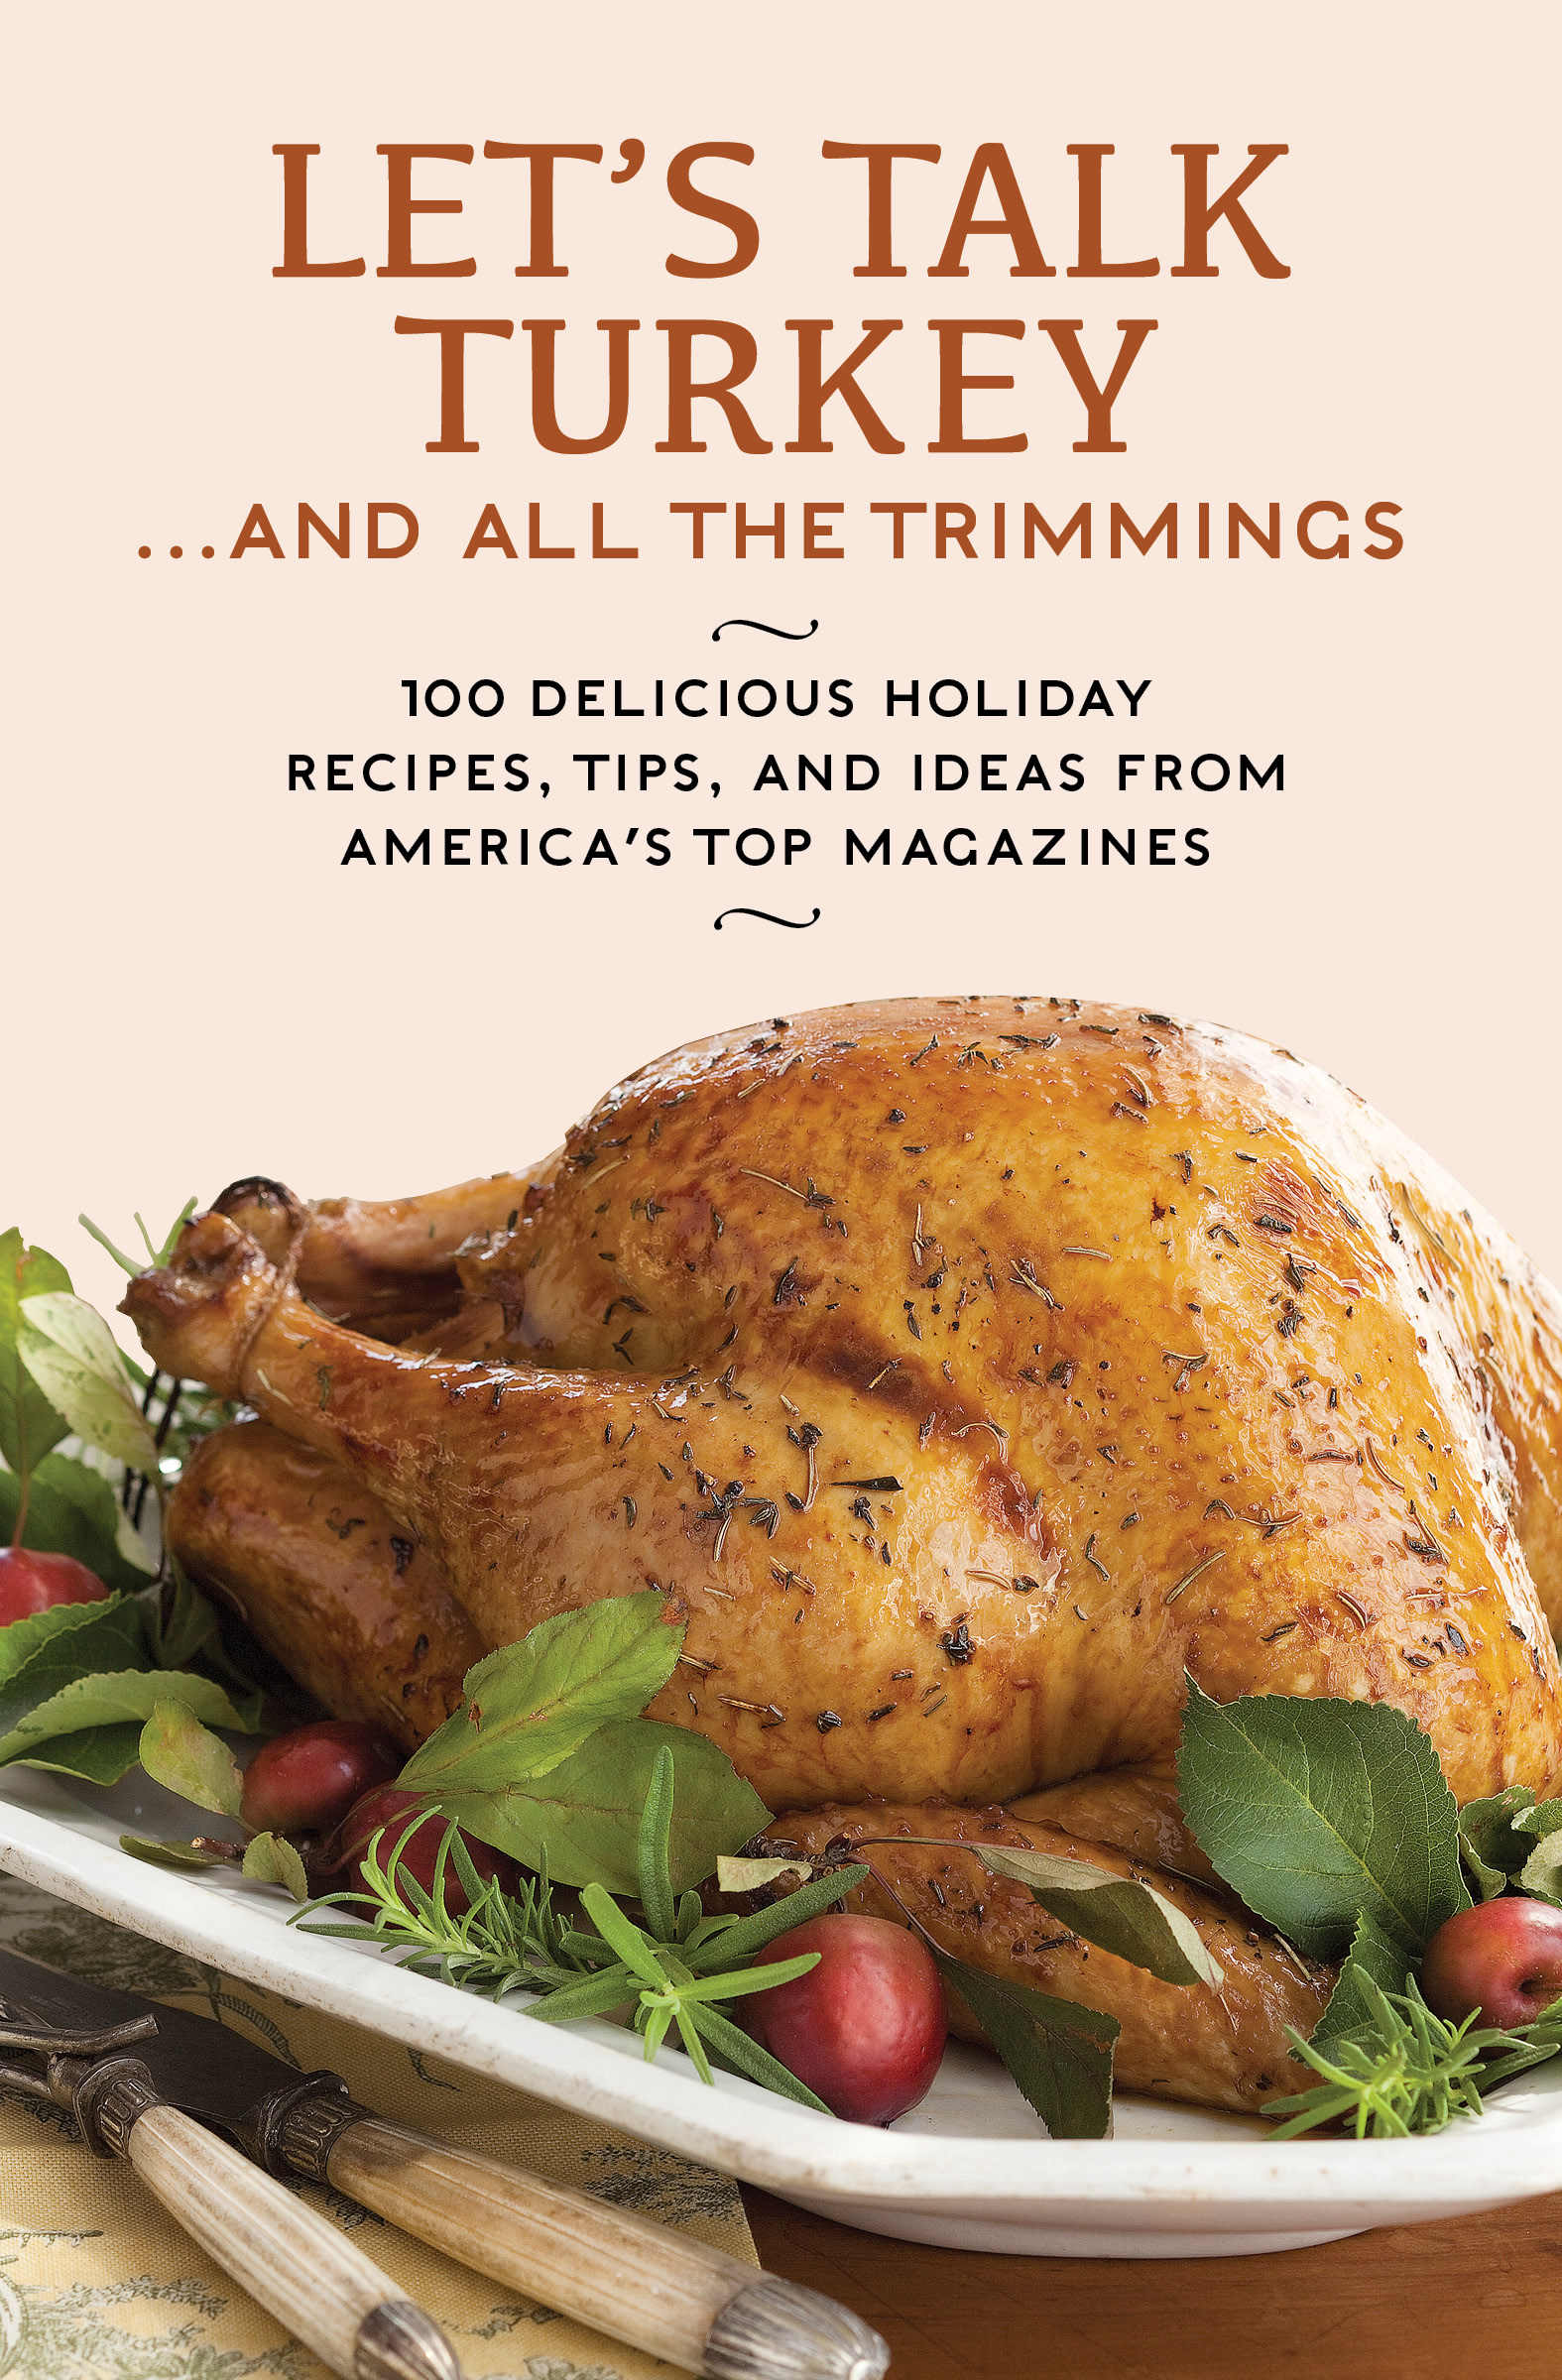 Let's Talk Turkey . . . And All the Trimmings 100 Delicious Holiday Recipes, Tips, and Ideas from America's Top Magazines.